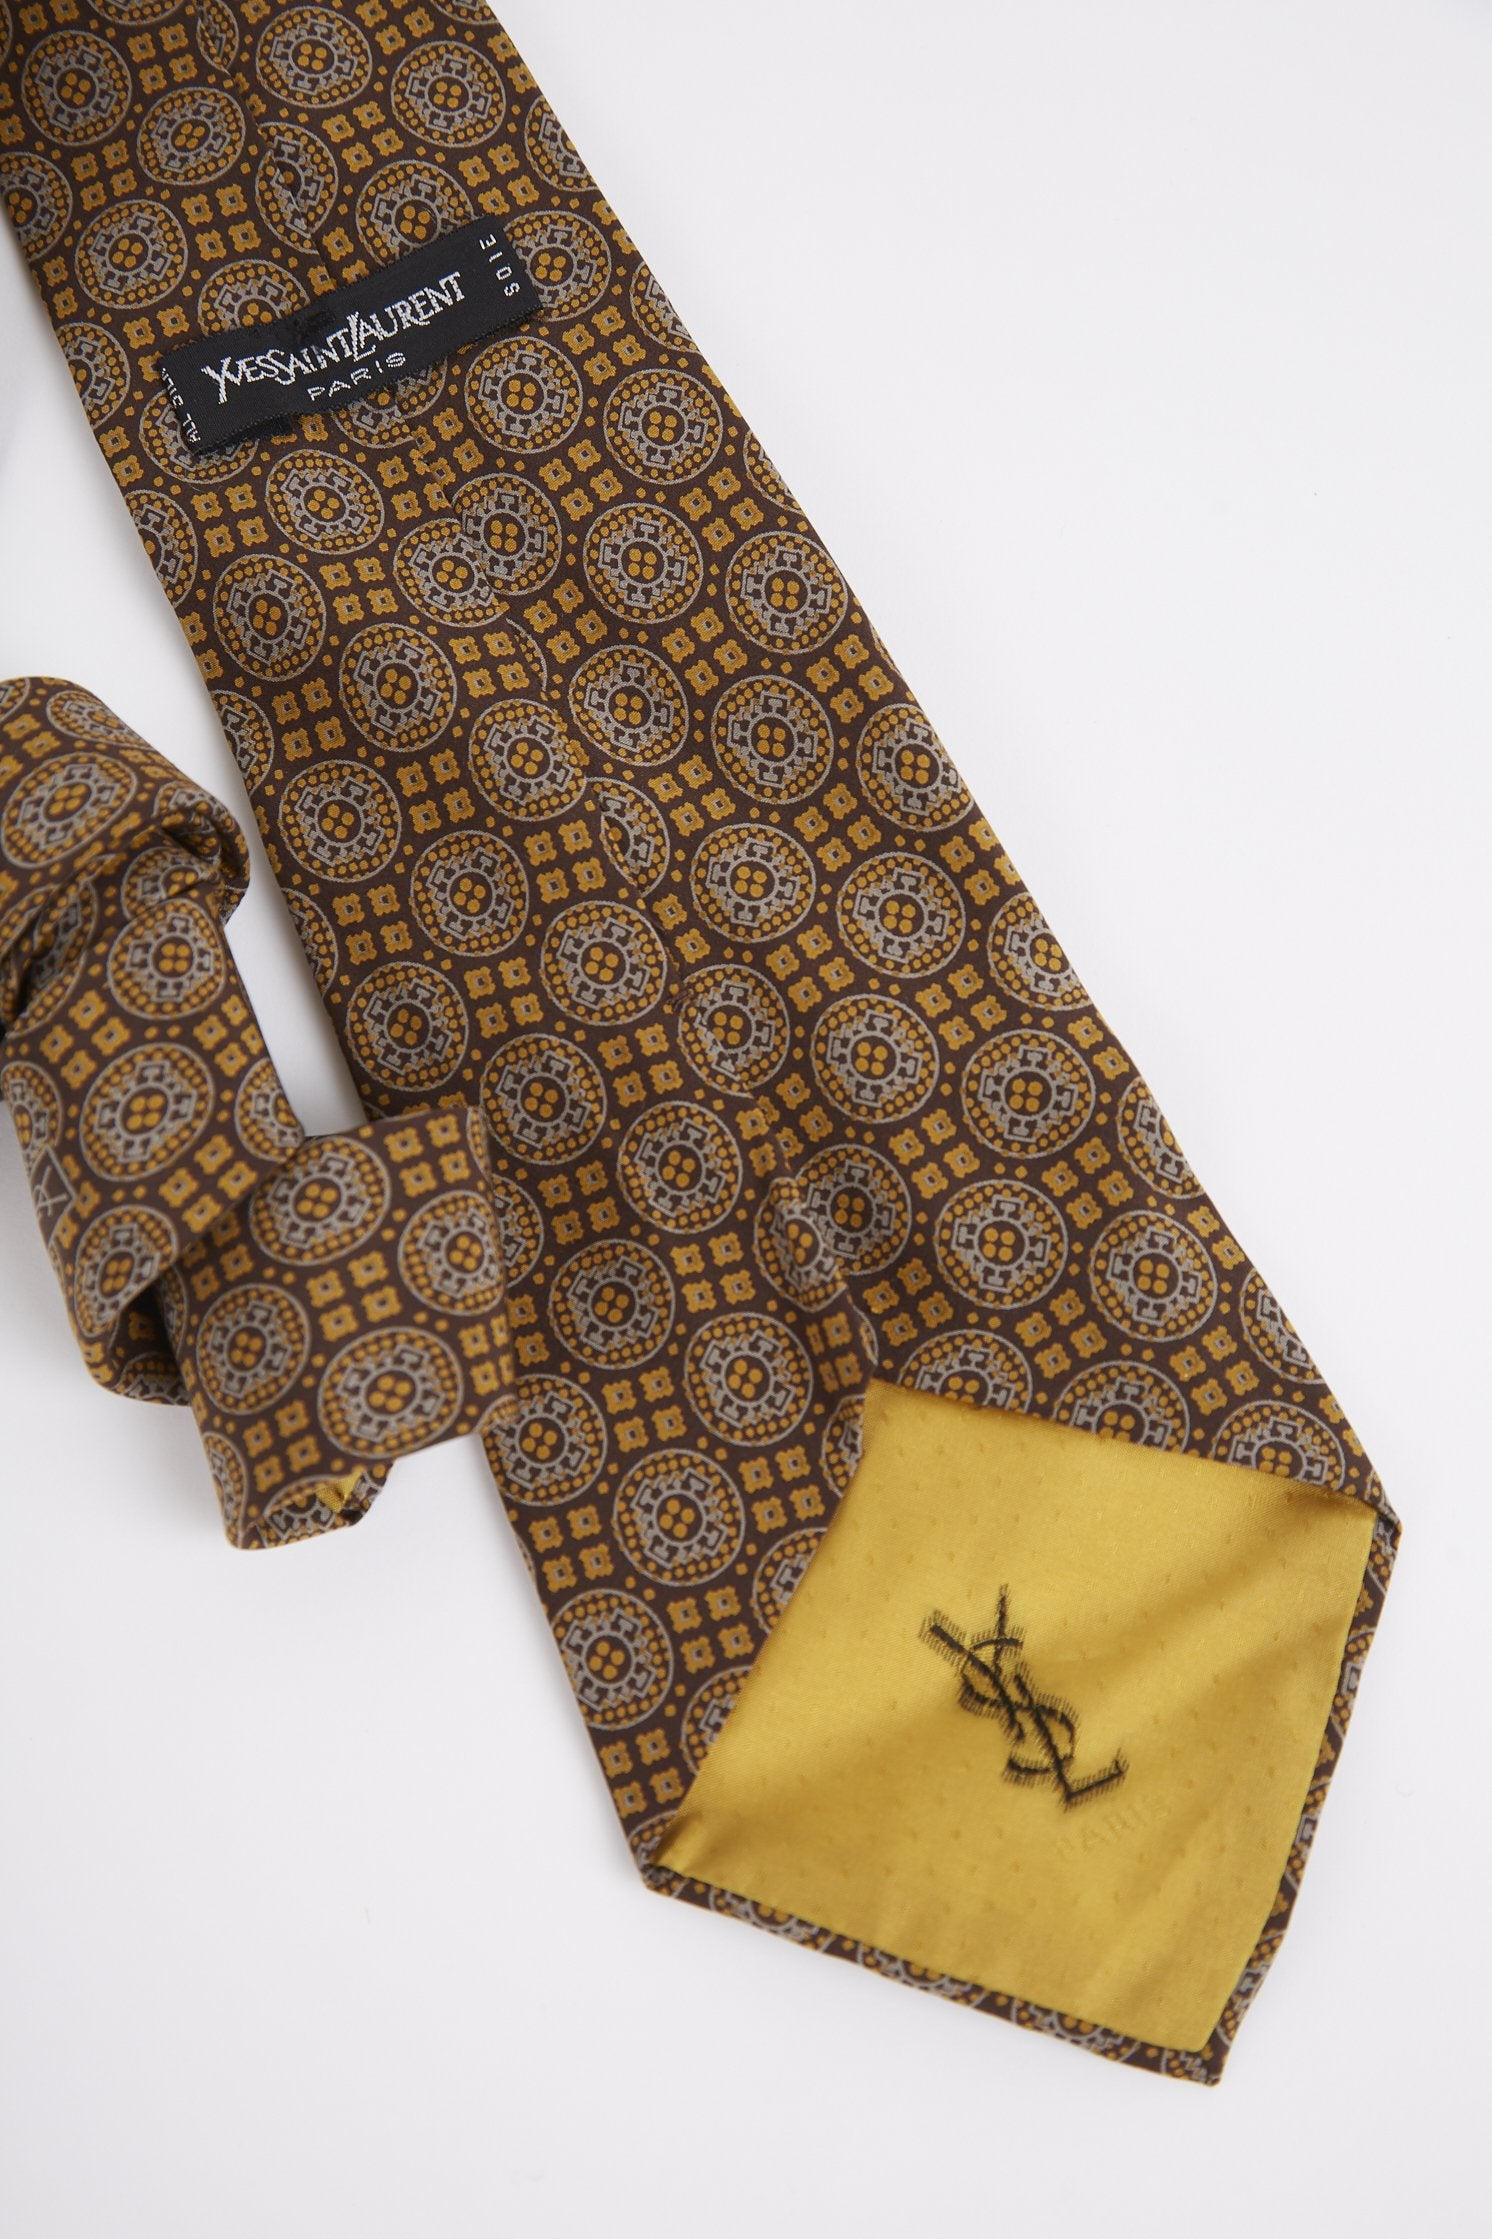 Vintage Yves Saint Laurent Tie - Thrifted.com